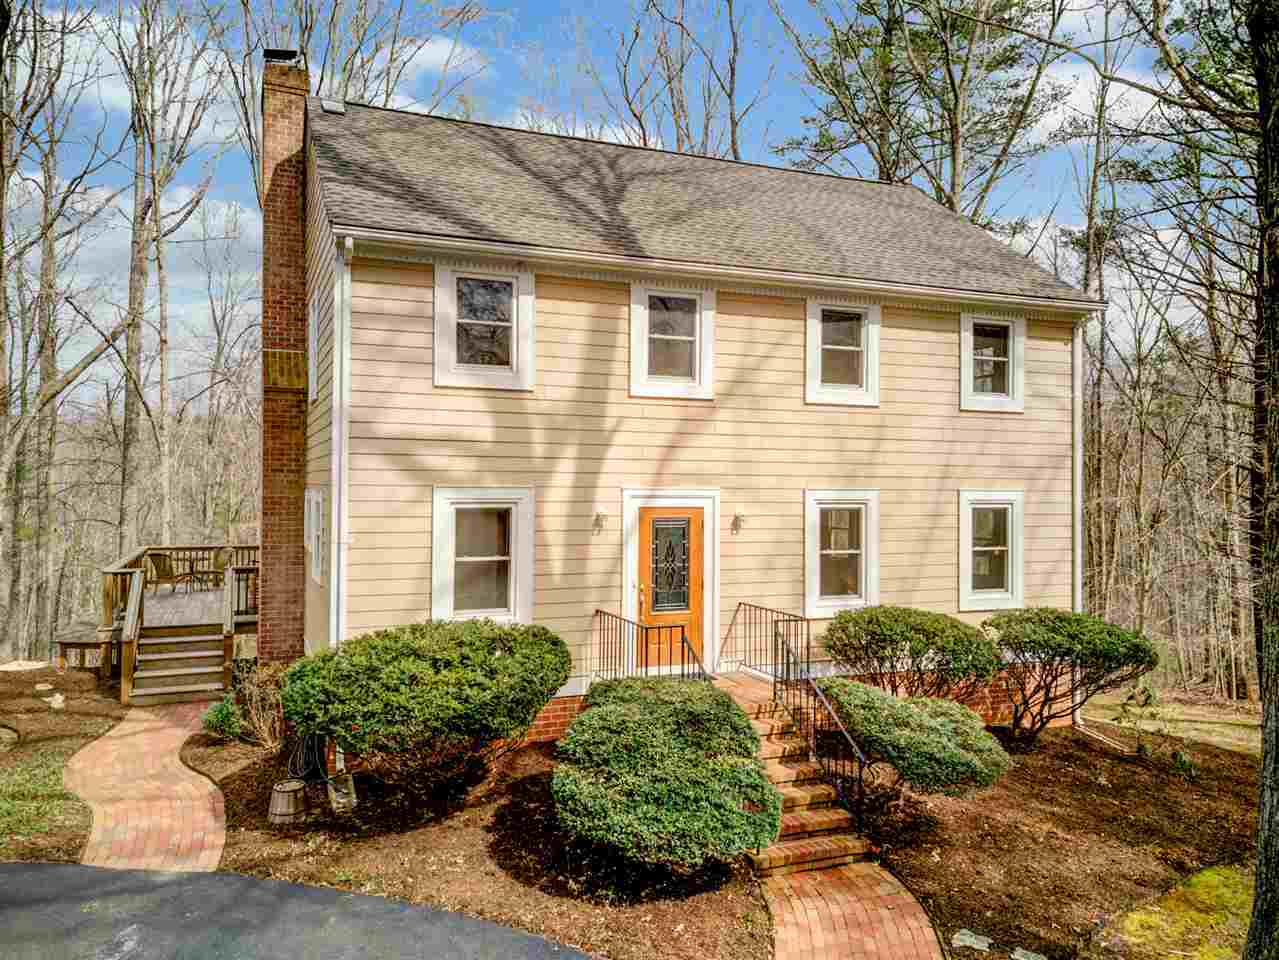 $459,900 - 4Br/3Ba -  for Sale in Whippoorwill Hollow, Charlottesville